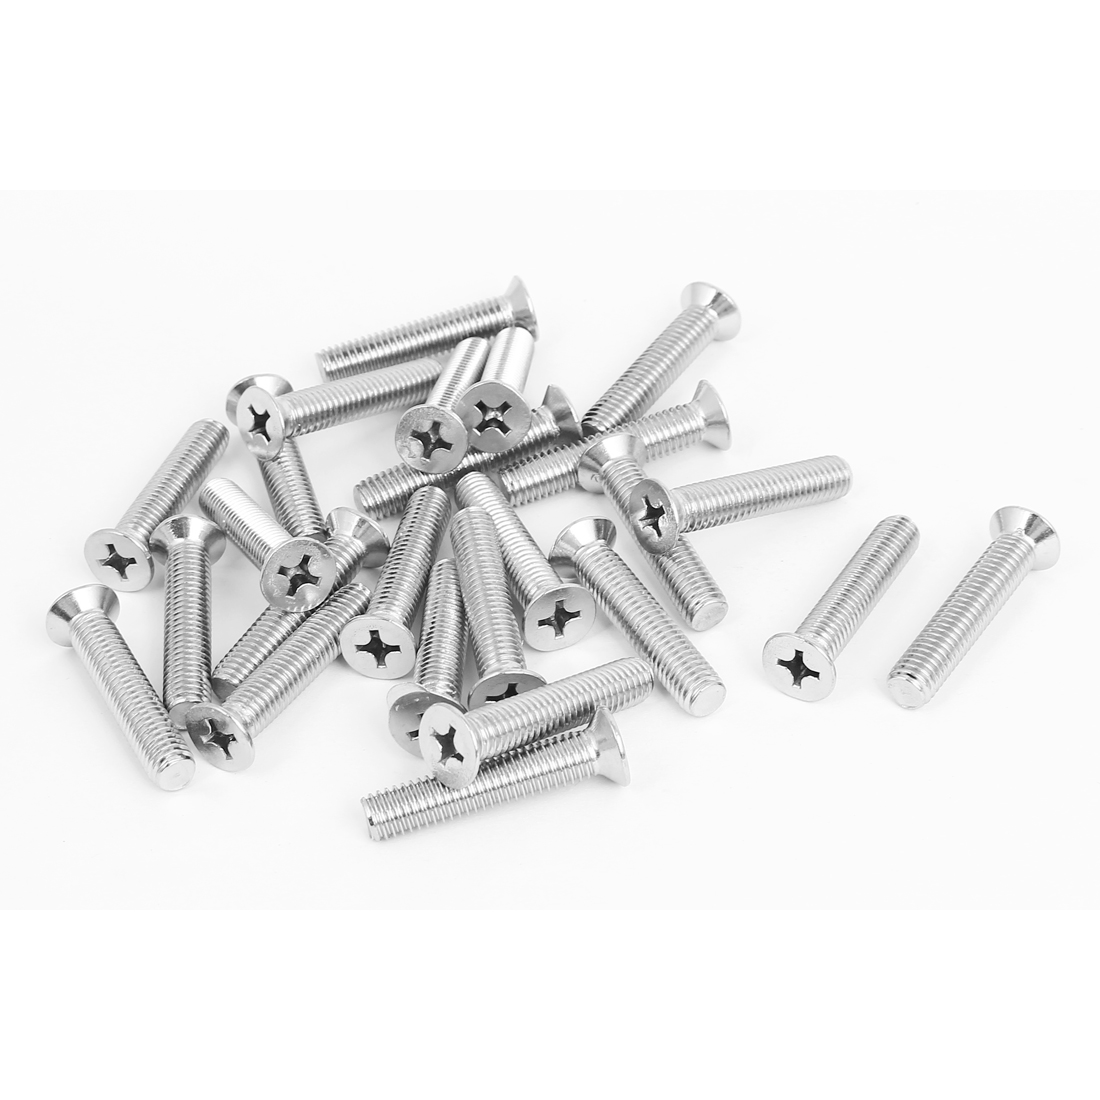 M8x40mm Stainless Steel Countersunk Flat Head Cross Phillips Screw Bolts 25pcs